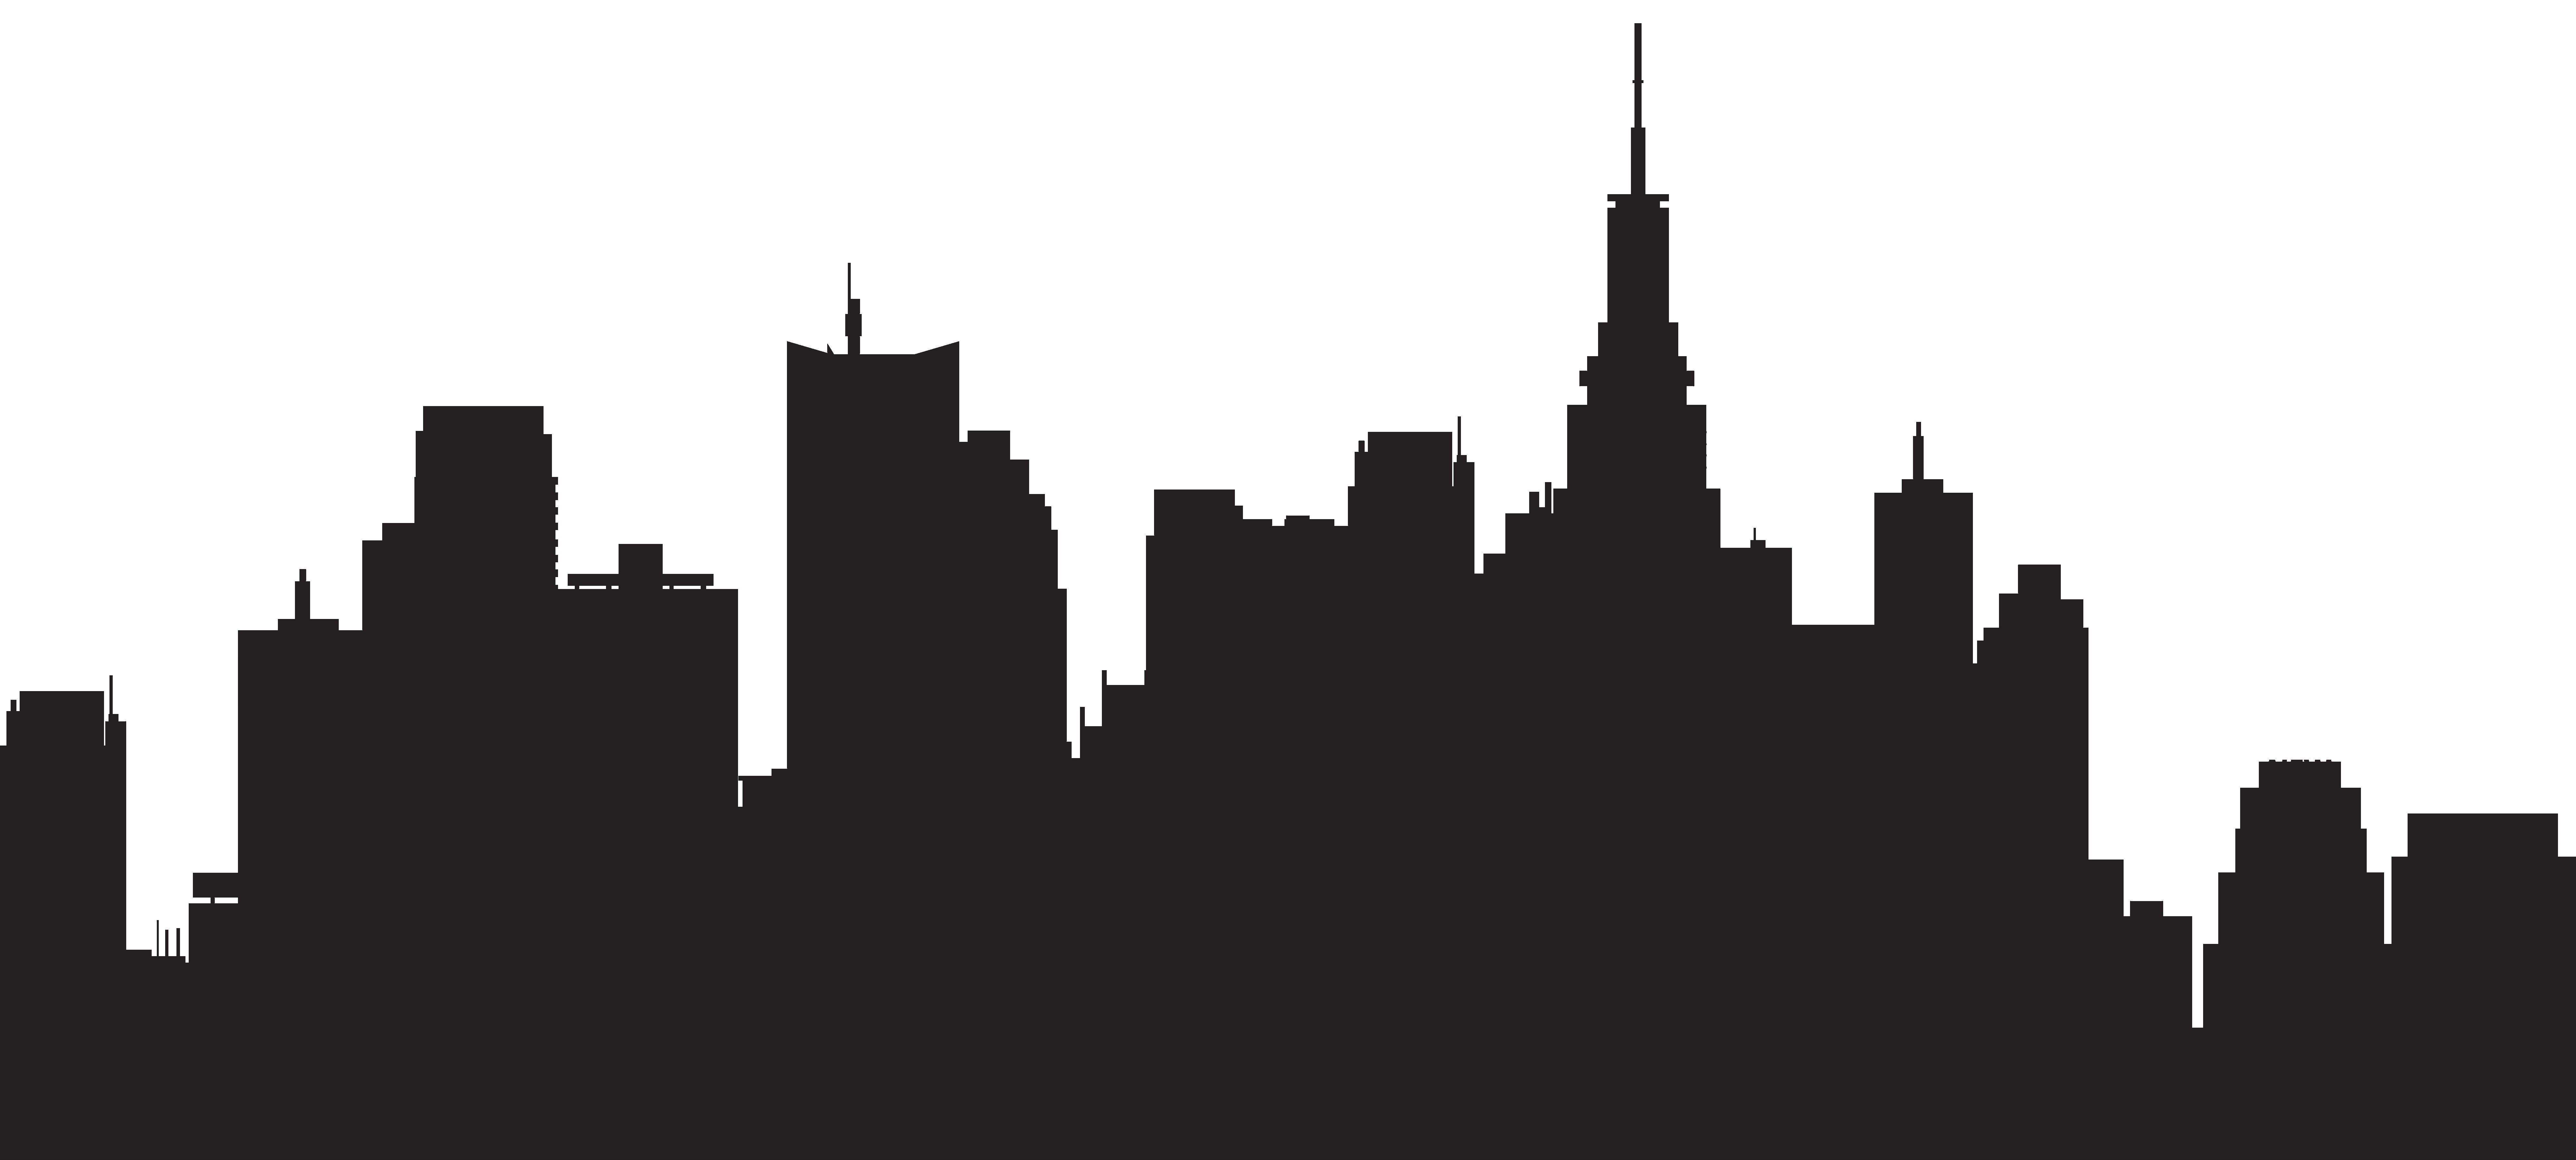 Boston Skyline Silhouette Png (110+ images in Collection) Page 2.